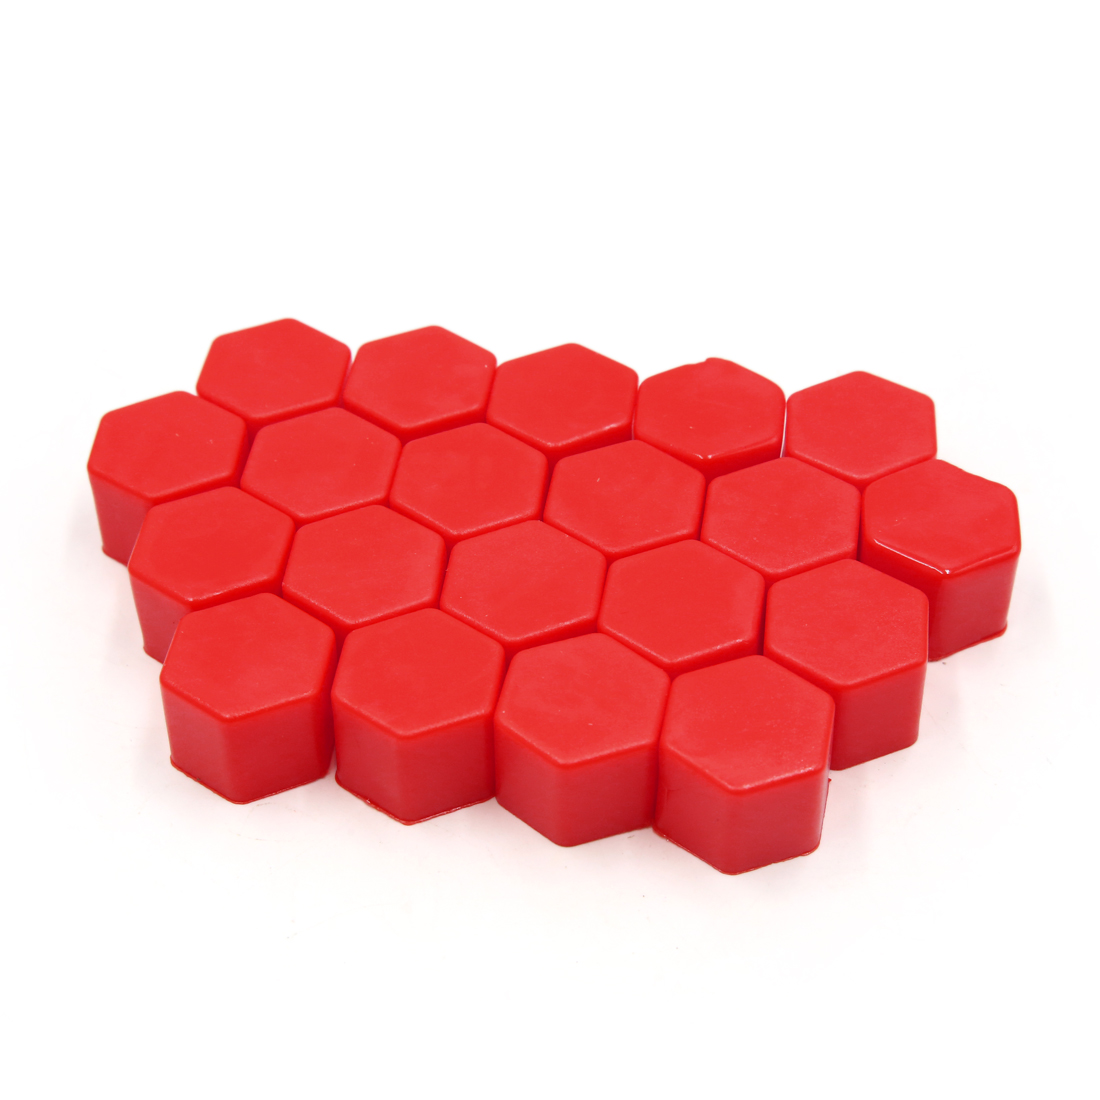 20 Pcs 21 x 20mm Red Car Vehicle Wheel Tyre Hub Screw Bolt Nut Cap Covers